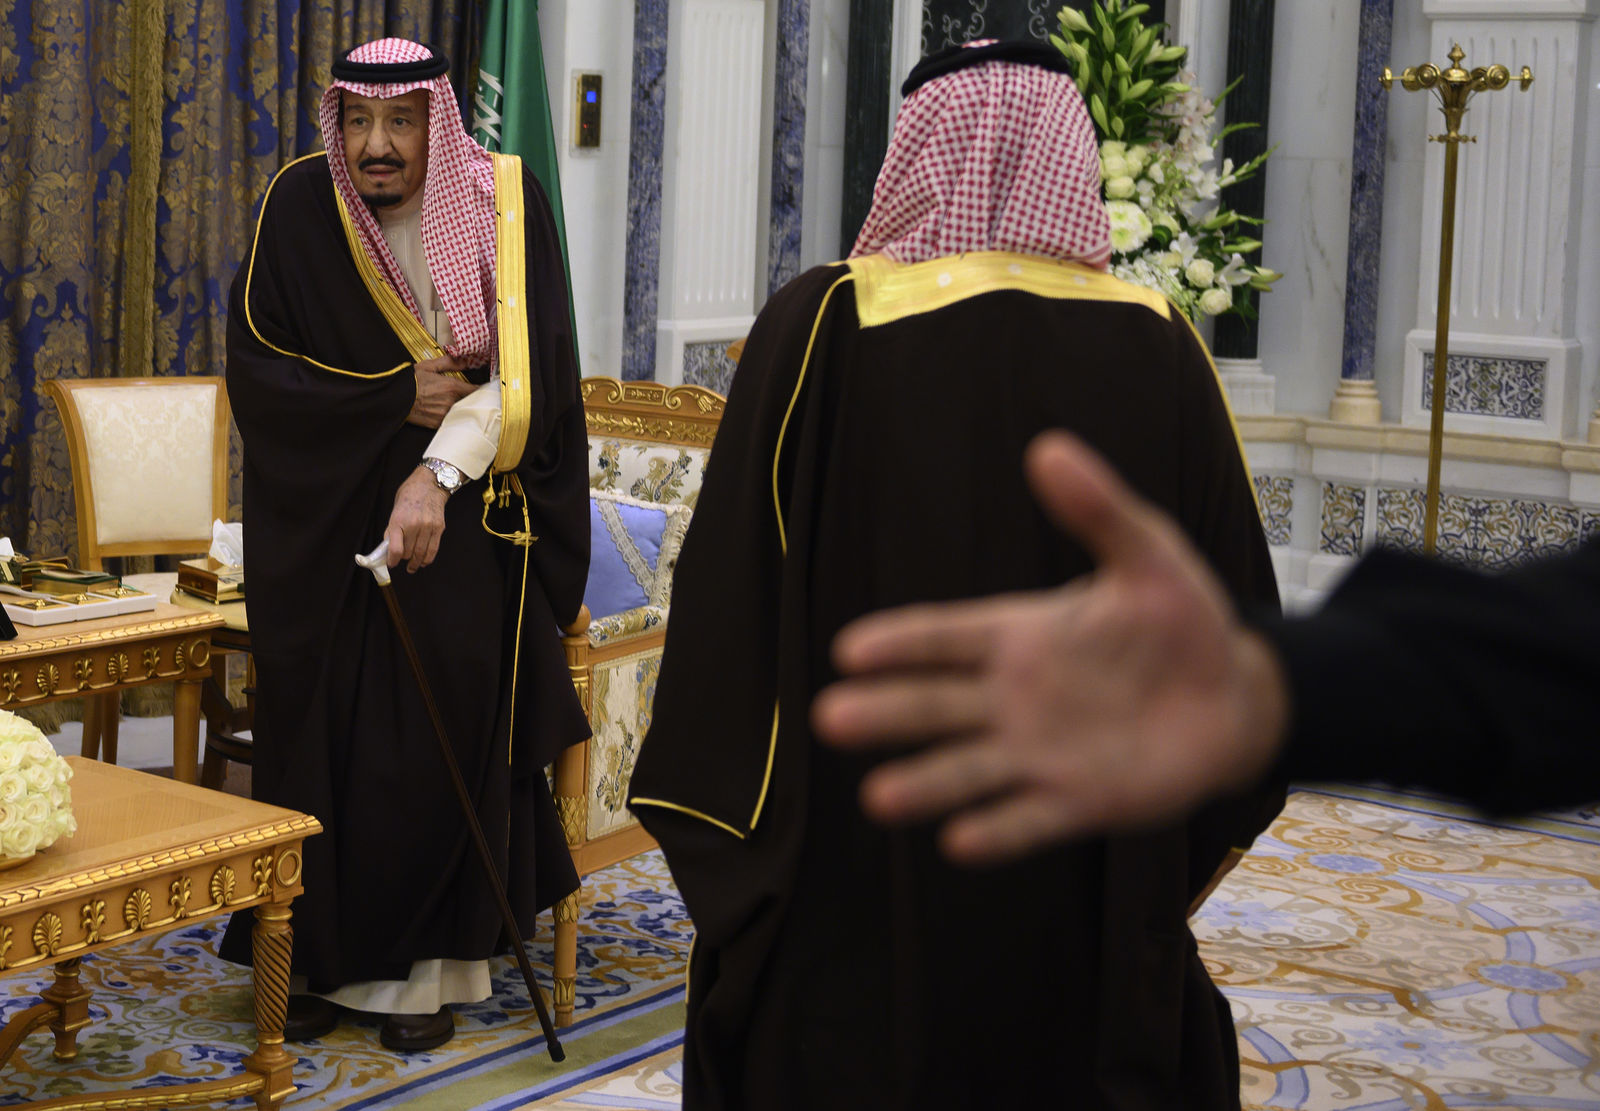 Saudi Arabia's King Salman, left, stands to greet U.S. Secretary of State Mike Pompeo at the Royal Court in Riyadh, Monday, January 14, 2019. (Andrew Cabellero-Reynolds/Pool via AP)